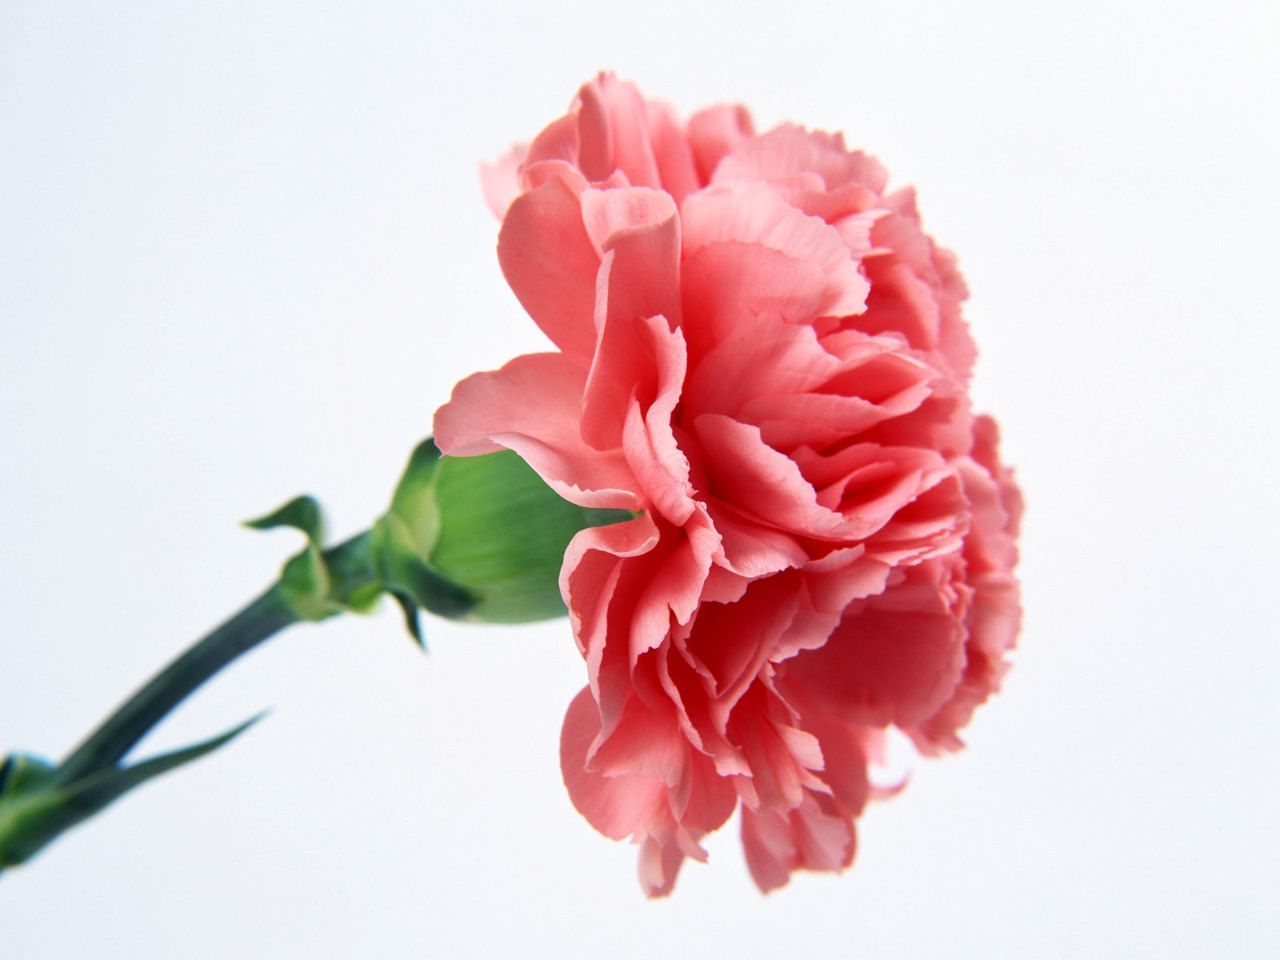 Fragrant And Beautiful Carnation Flowers Have Become Symbolic Of Mother S Love And Also Mothers Day Carnation Flower Carnation Plants Carnation Flower Meaning